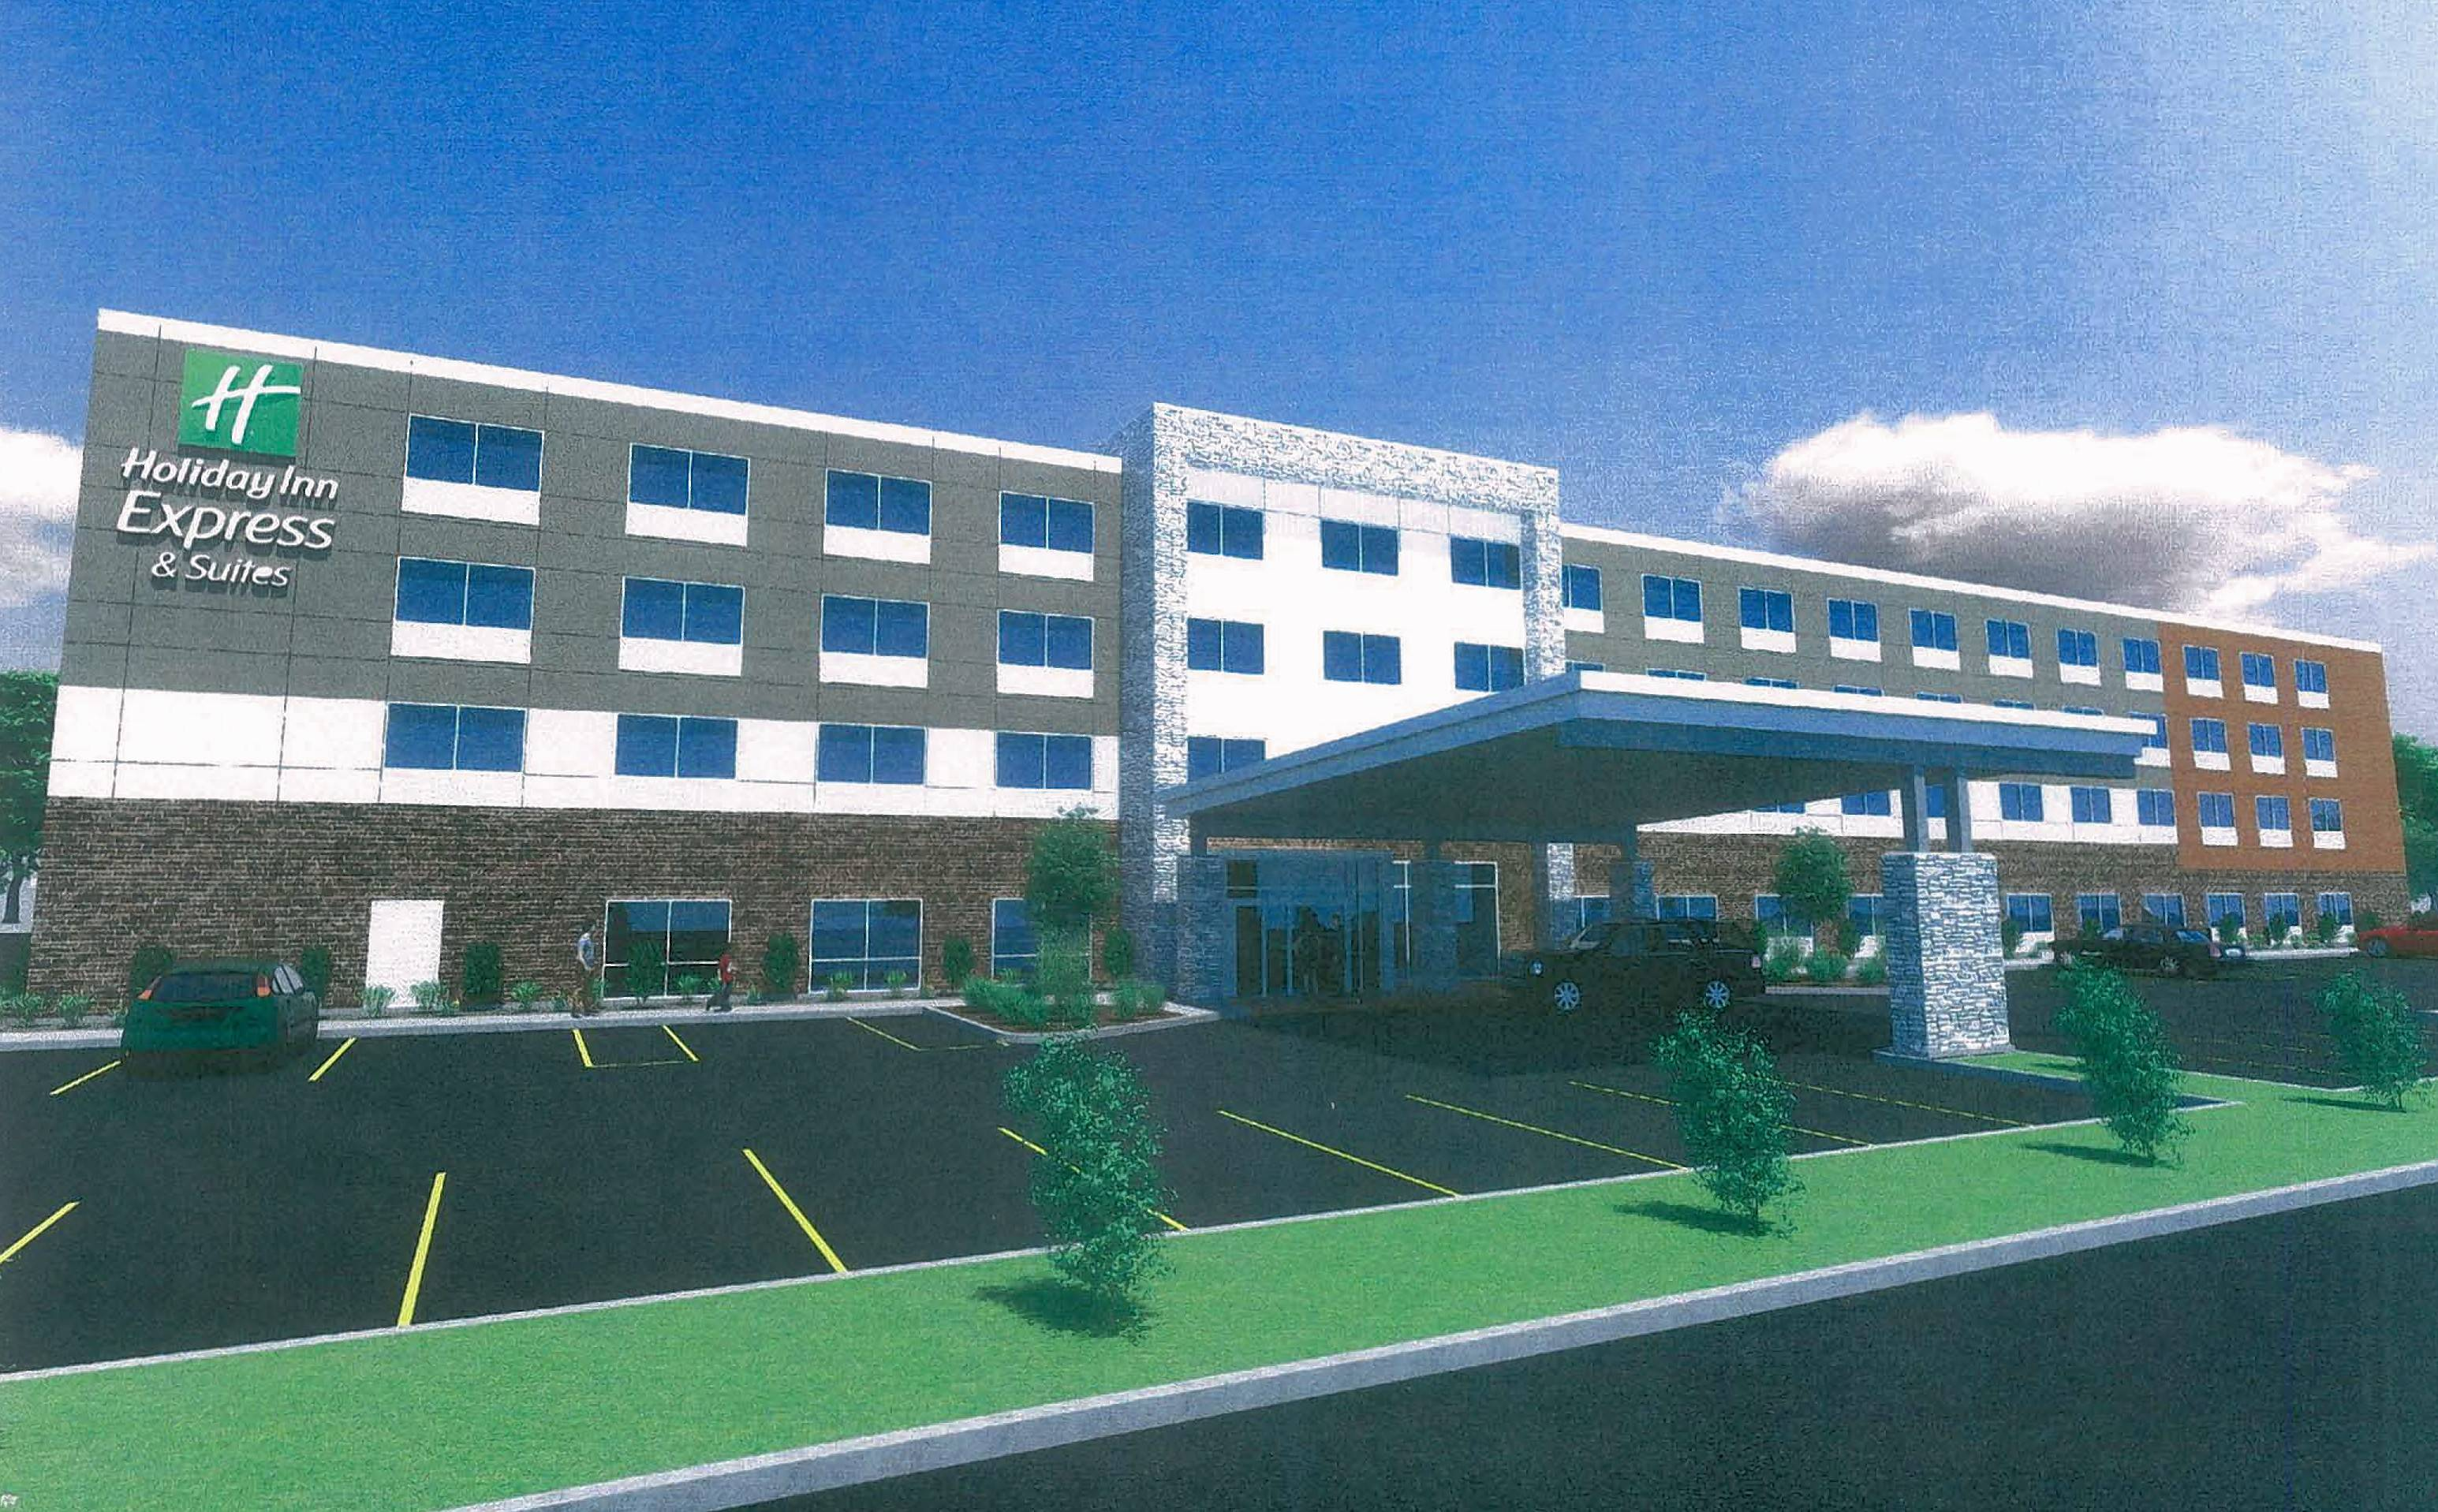 A rendering of the Holiday Inn Express approved Monday for a site next to Cabela's in Hoffman Estates' Prairie Stone Business Park, on land Cabela's currently owns.